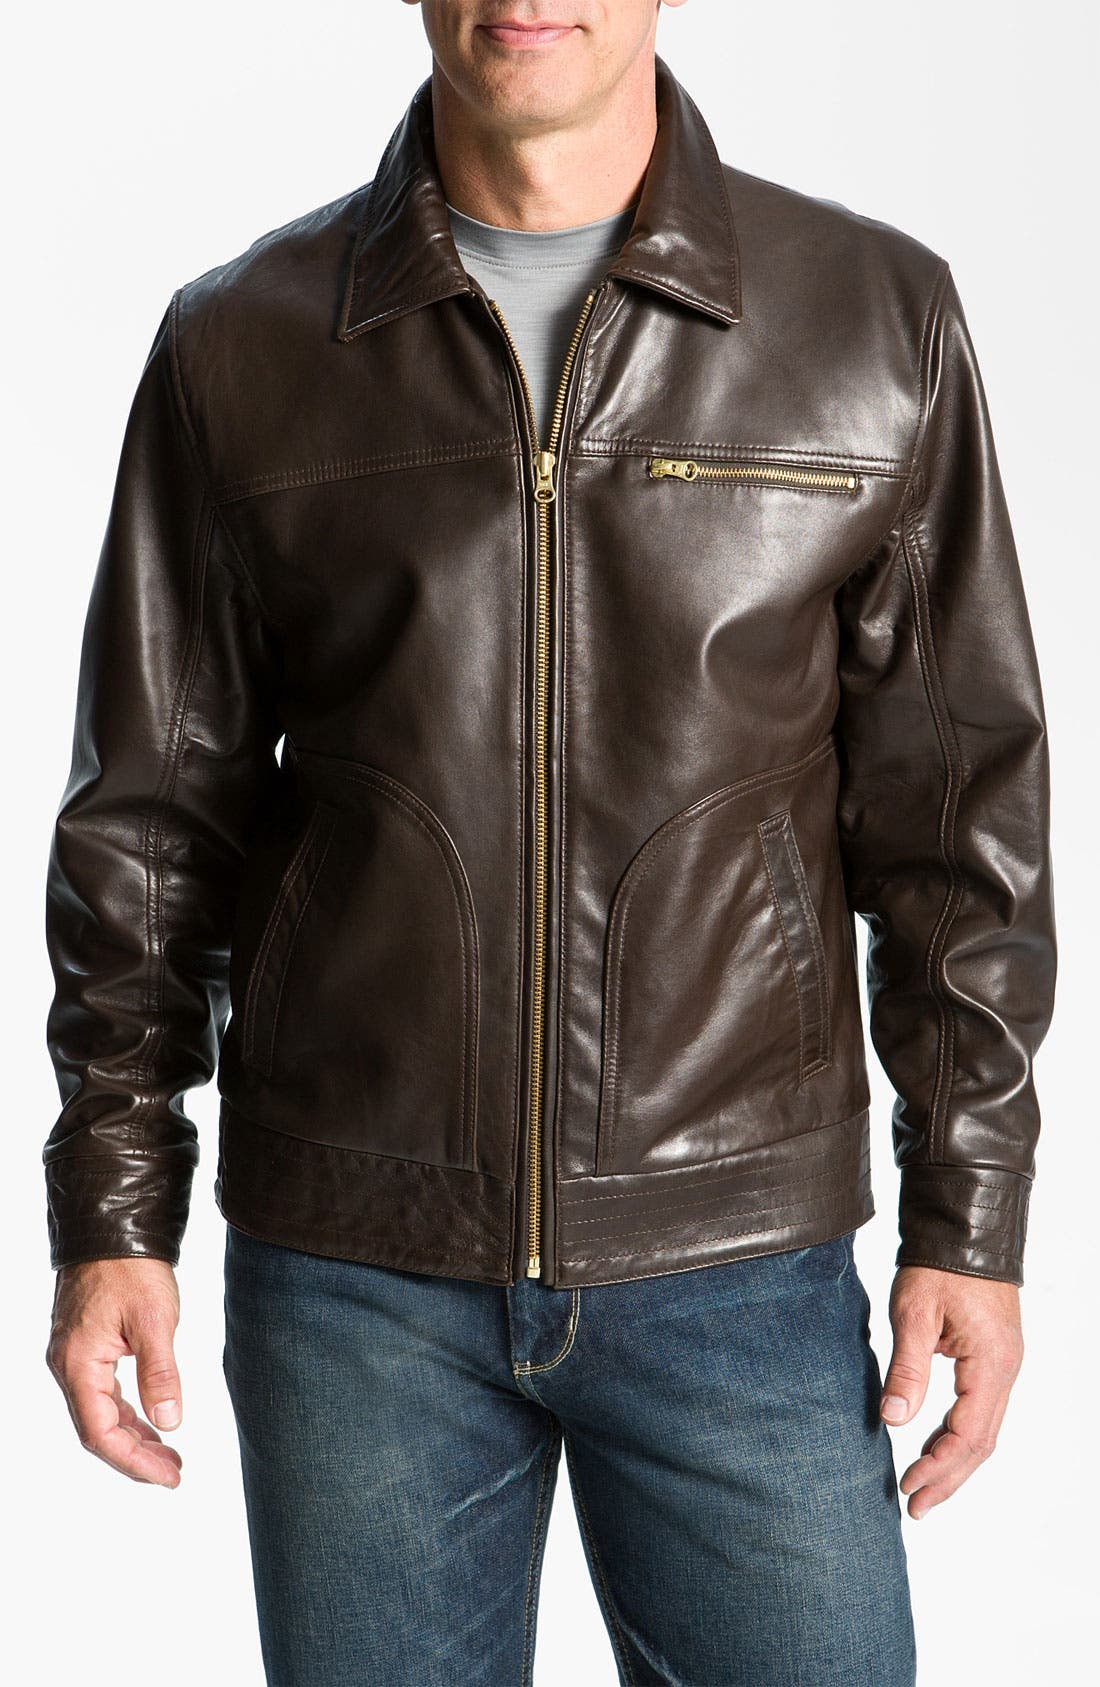 Alternate Image 1 Selected - Cutter & Buck 'Wildridge' Leather Bomber Jacket (Big & Tall)